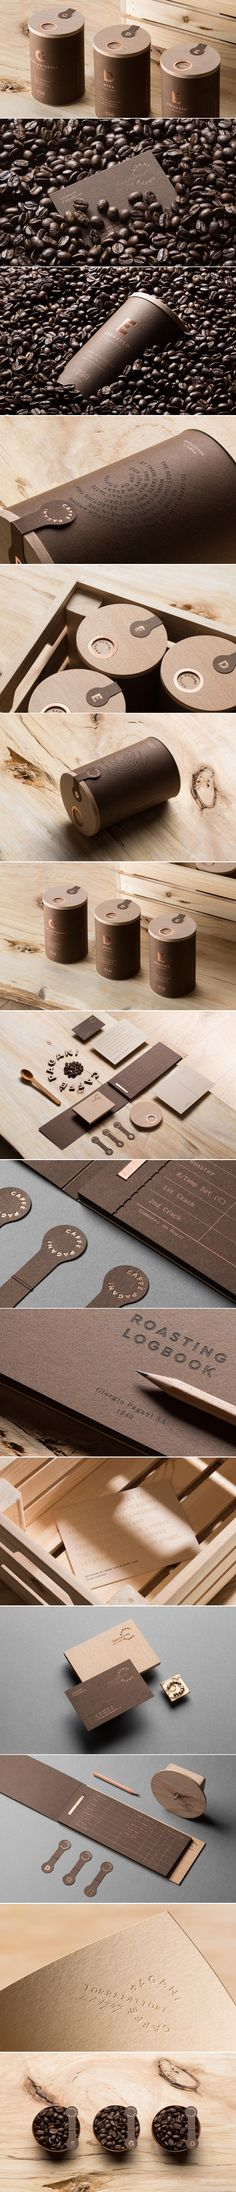 Caffè Pagani — The Dieline | Packaging & Branding Design & Innovation News